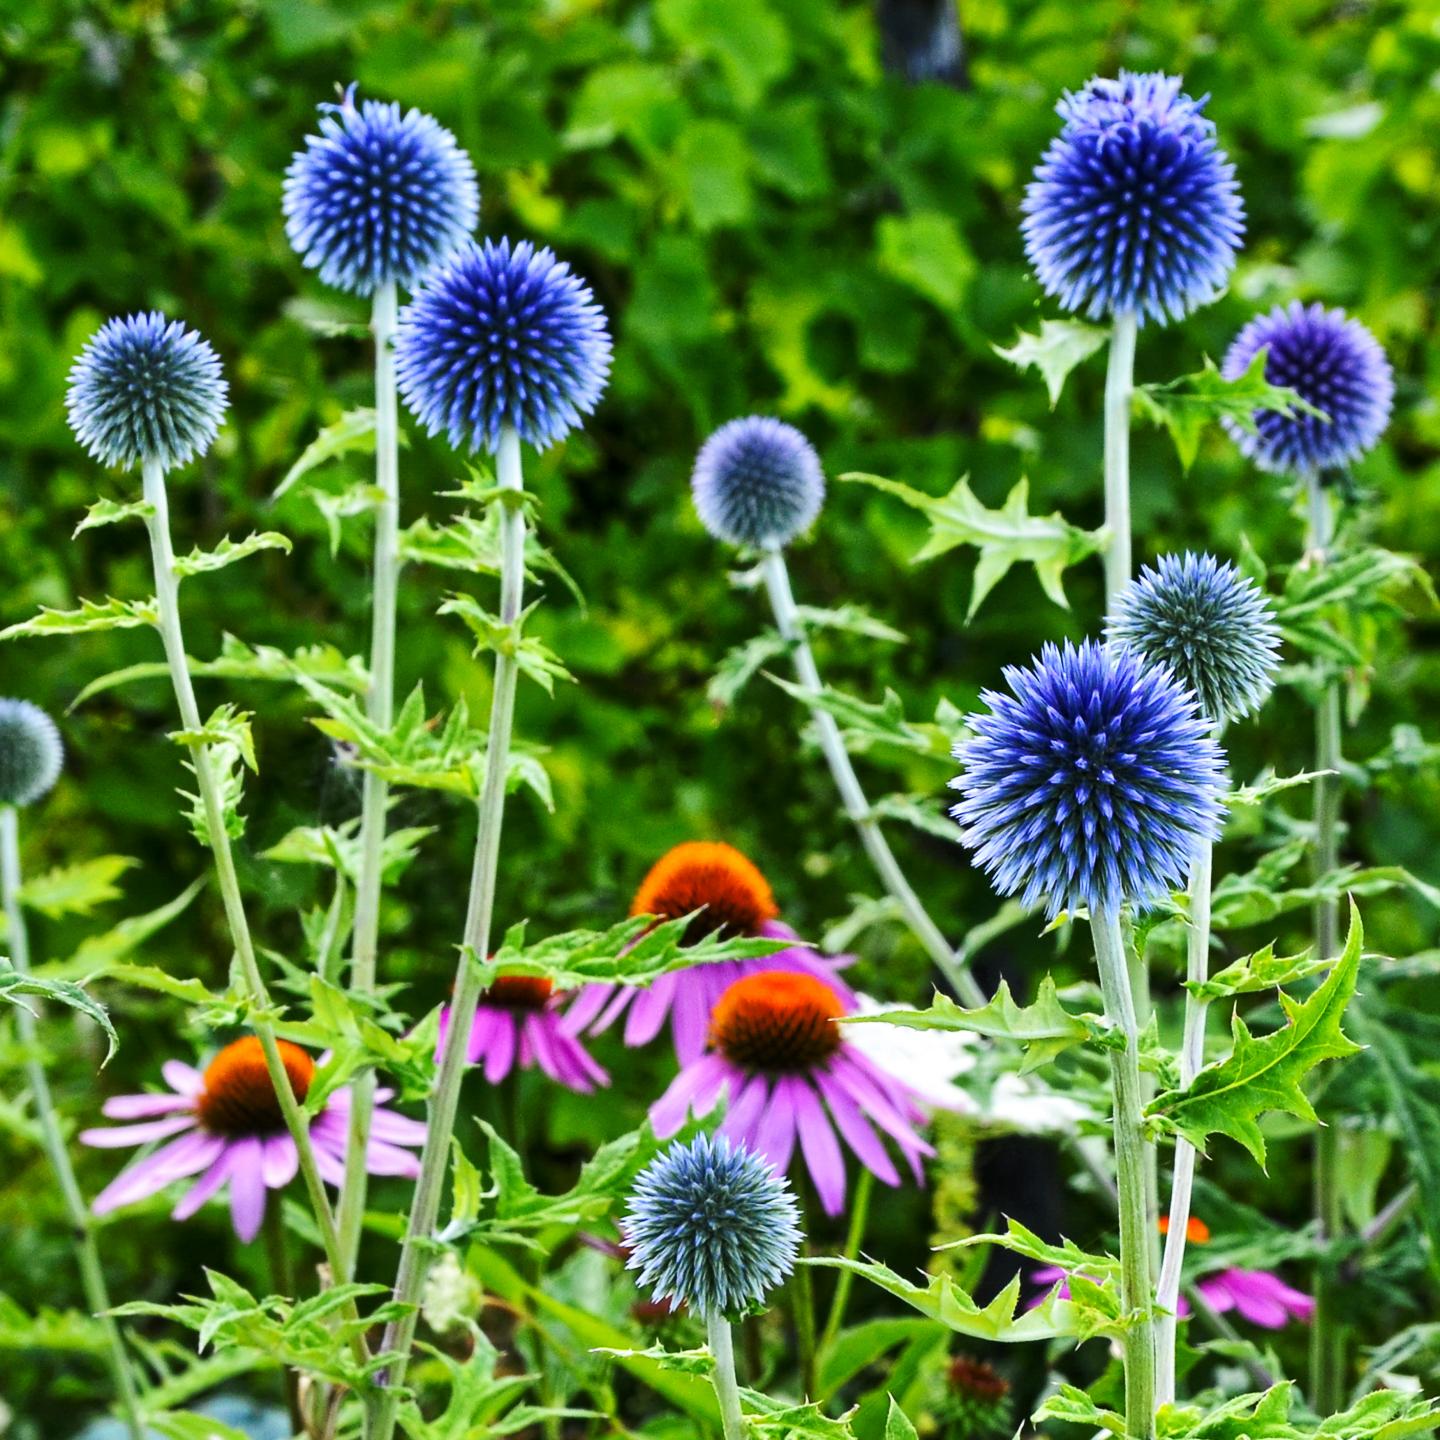 The Best Full Sun Perennials For A Summer Cutting Garden In Zones 4 To 8 Gardening From